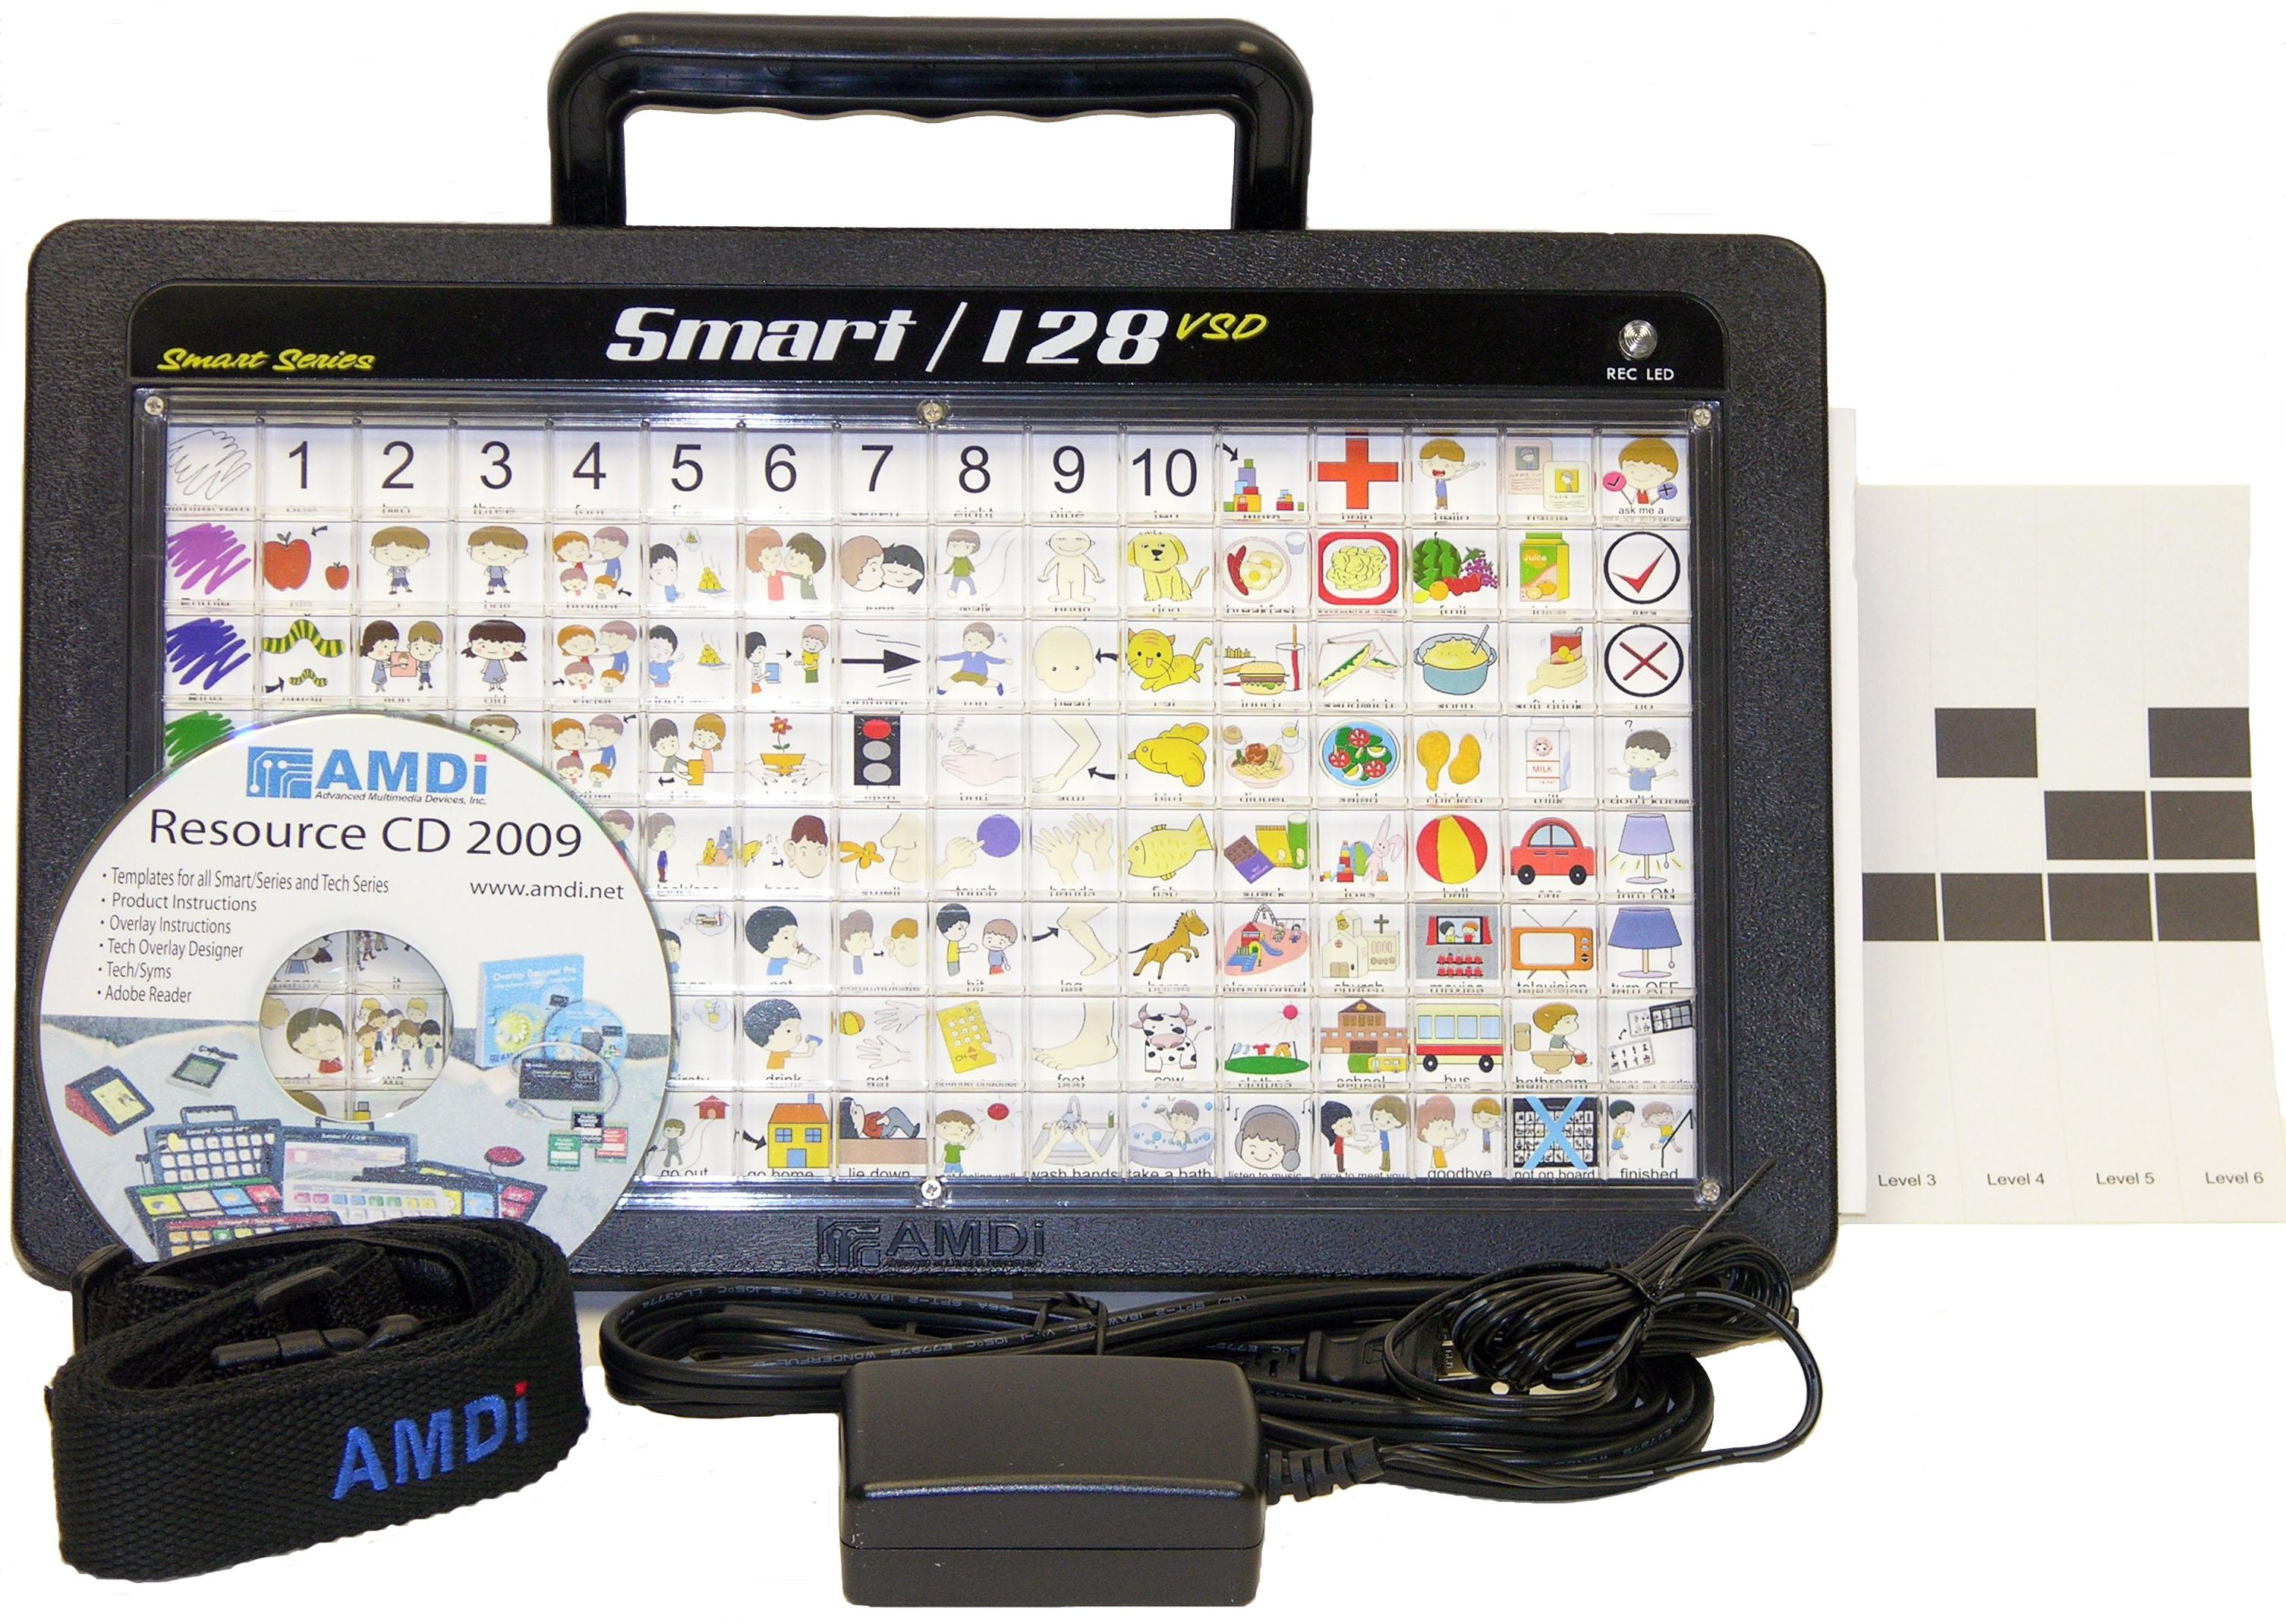 Smart/128x6 with Overlay Designer Pro